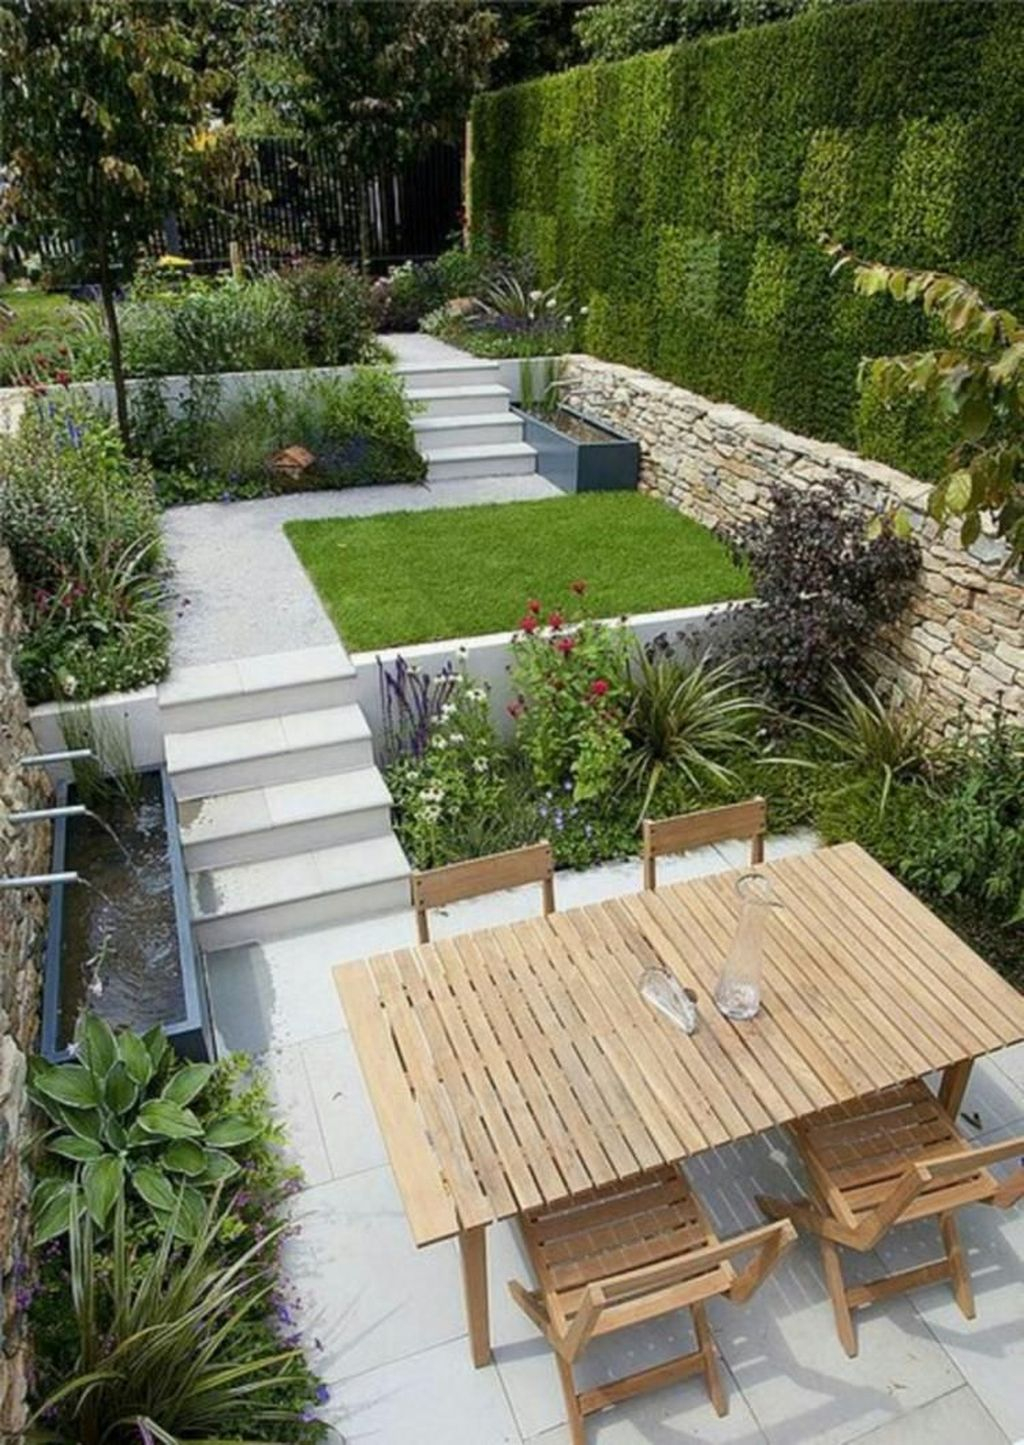 Amazing Garden Design Ideas For Small Space To Try 35